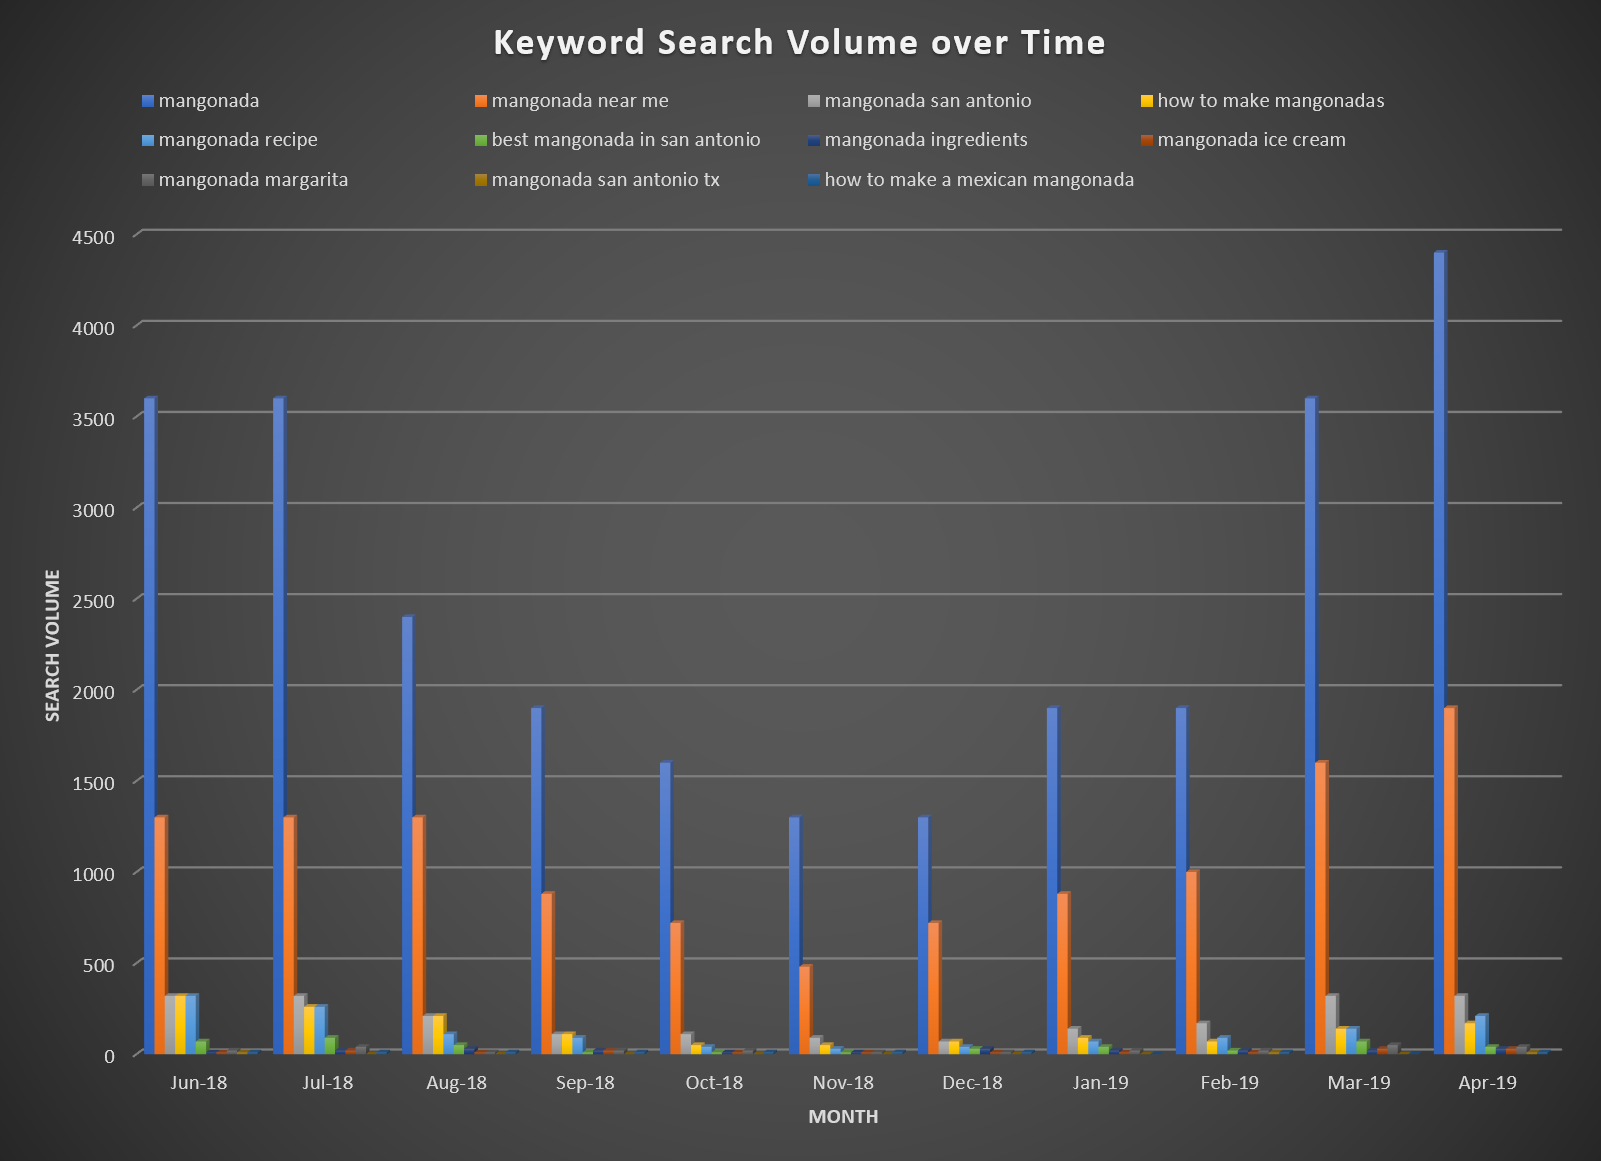 Graphical representation of Trends shown in the previous list and how they behave in certain months. For example: spring and summer months have an increase in search volume in comparison to the fall and winter months where a lower search volume was recorded.